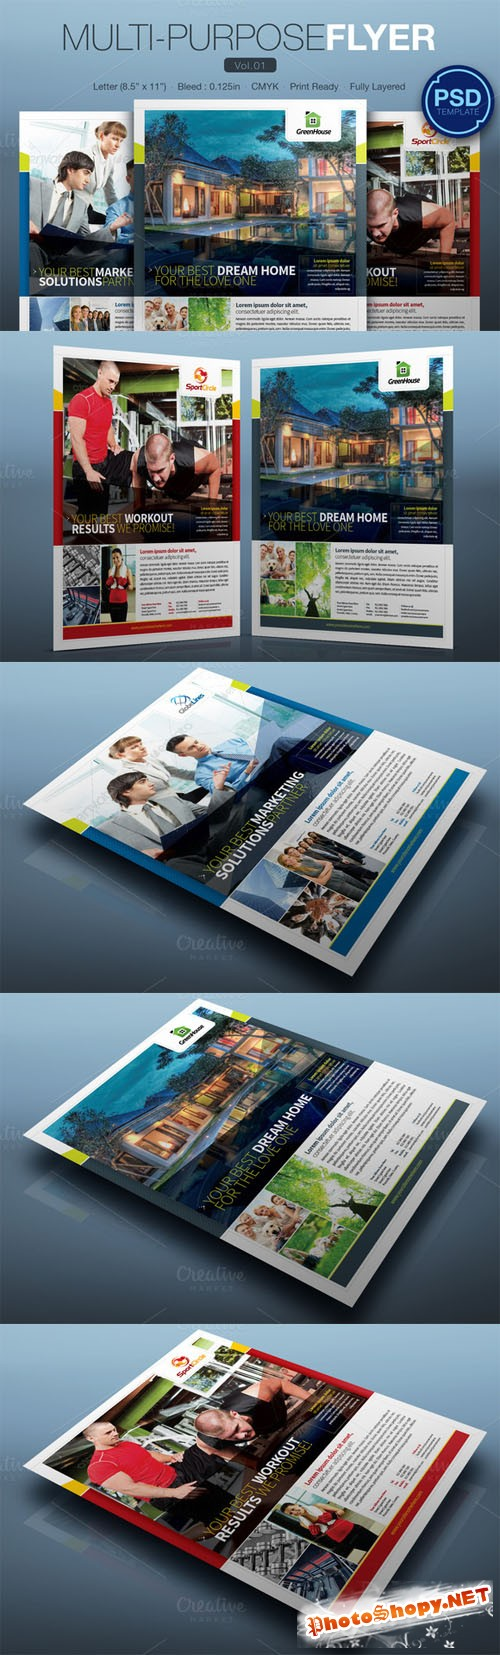 Multipurpose Flyer Vol.01 - Creativemarket 106771